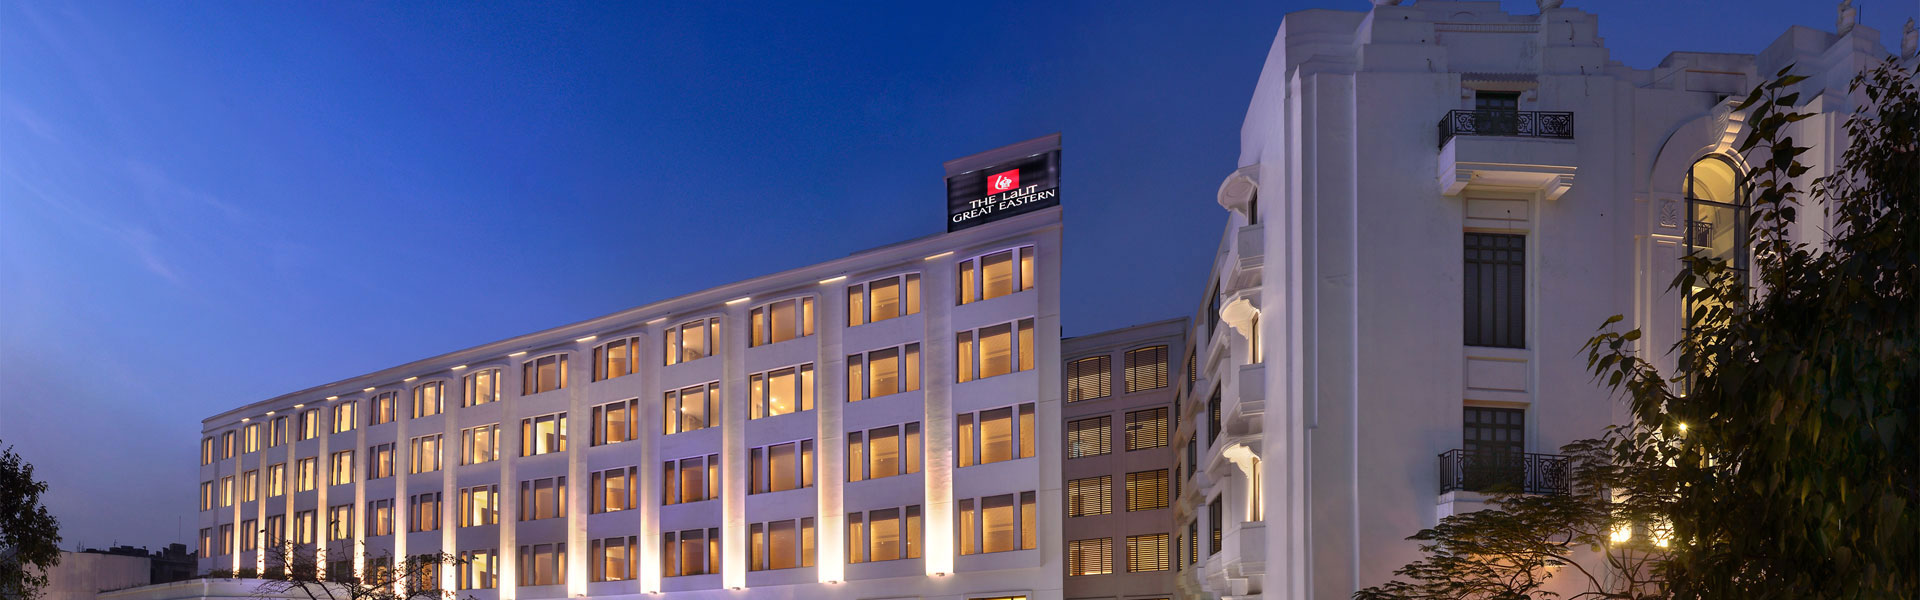 First 5 star Hotel in the city